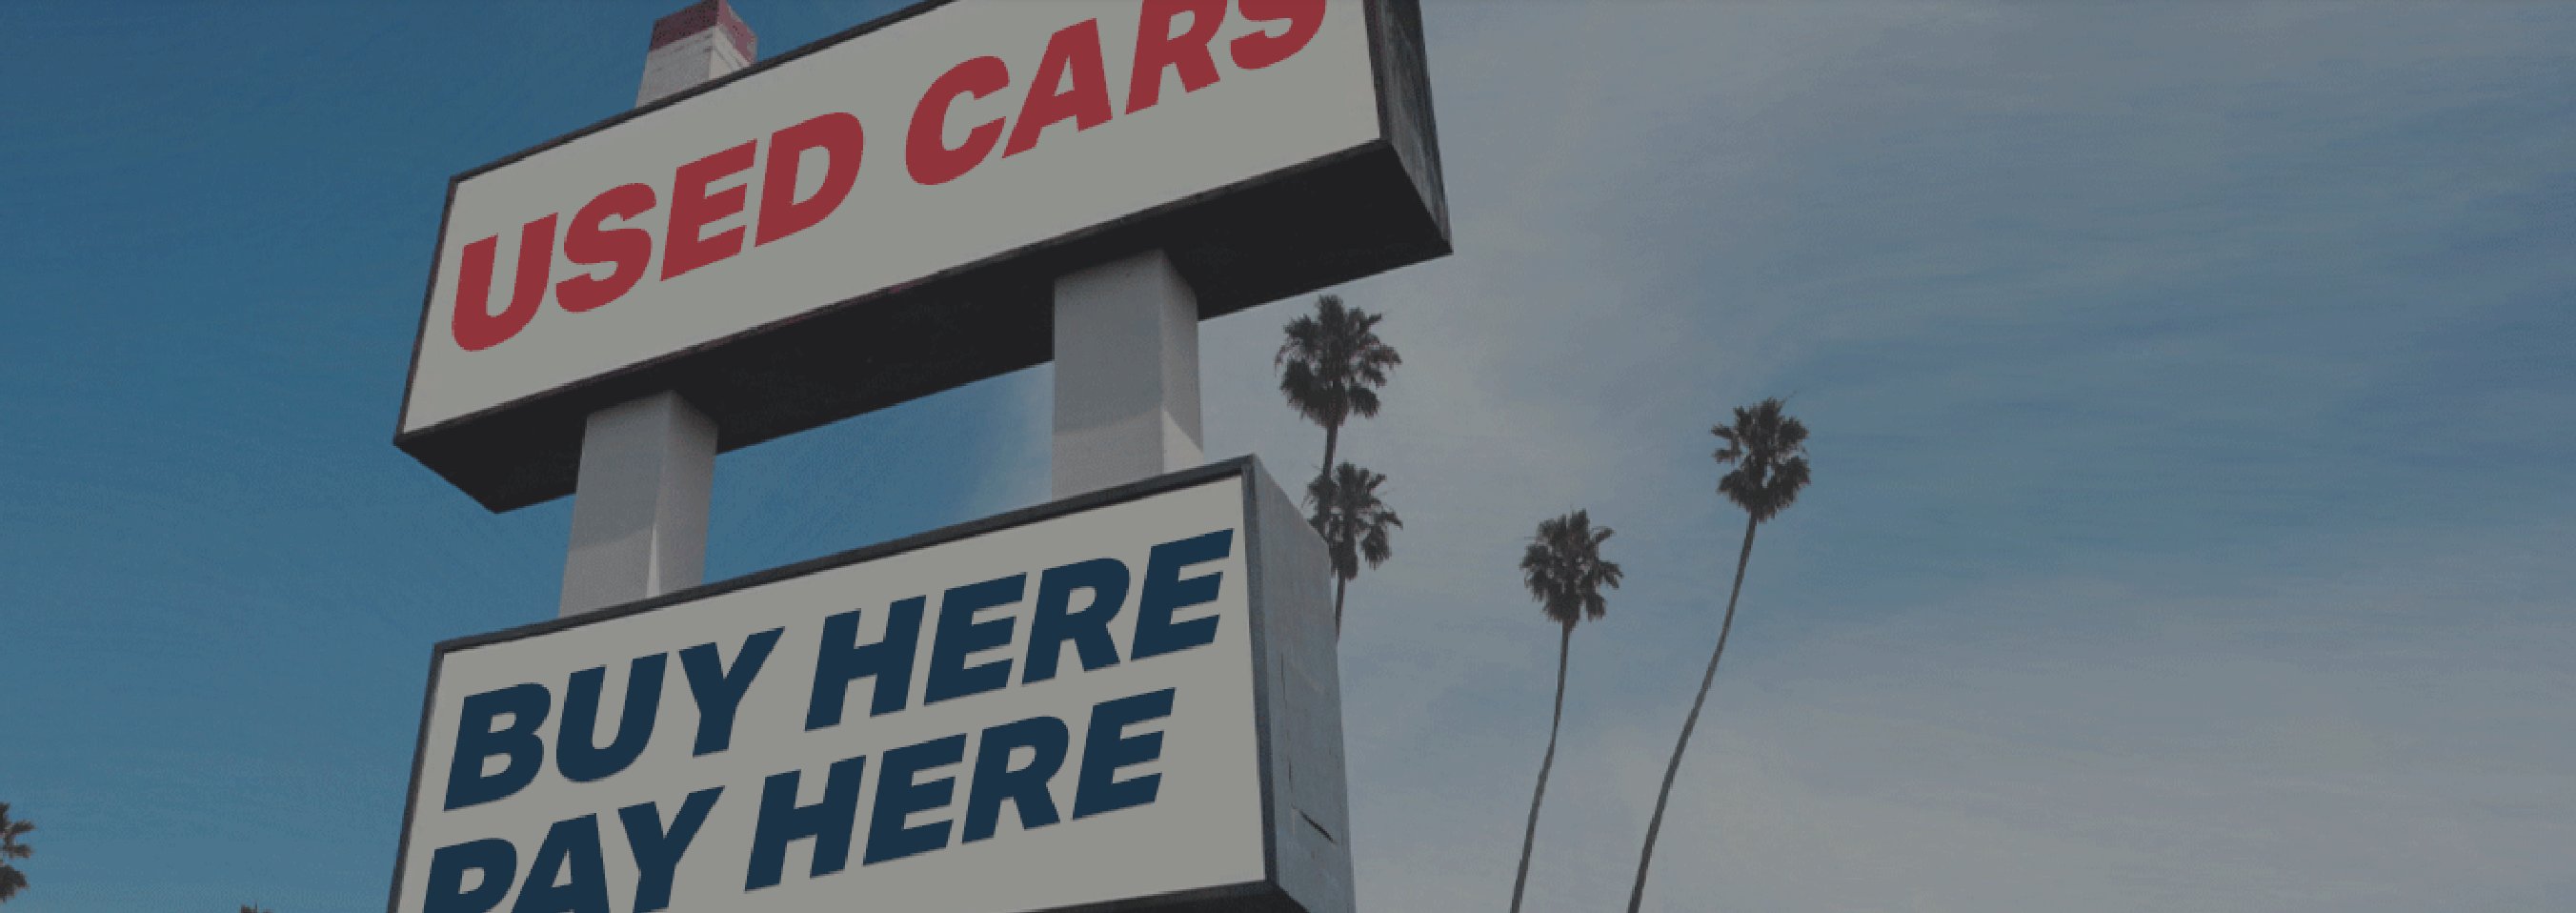 4 Best Practices for Buy Here Pay Here Dealerships